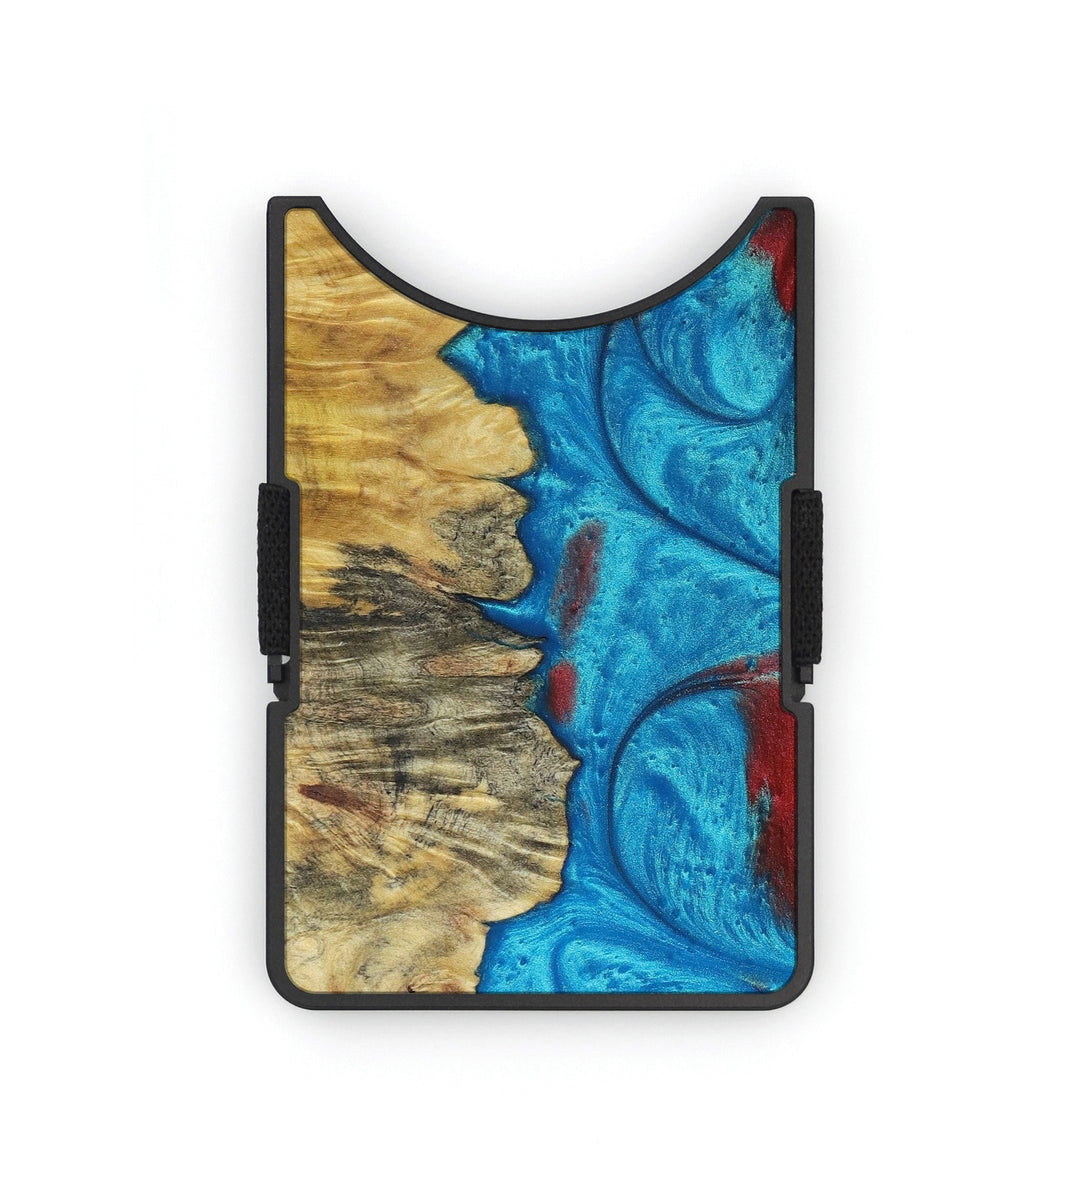 Alloy Wood+Resin Wallet - Nerti (Blue & Red, 395043)